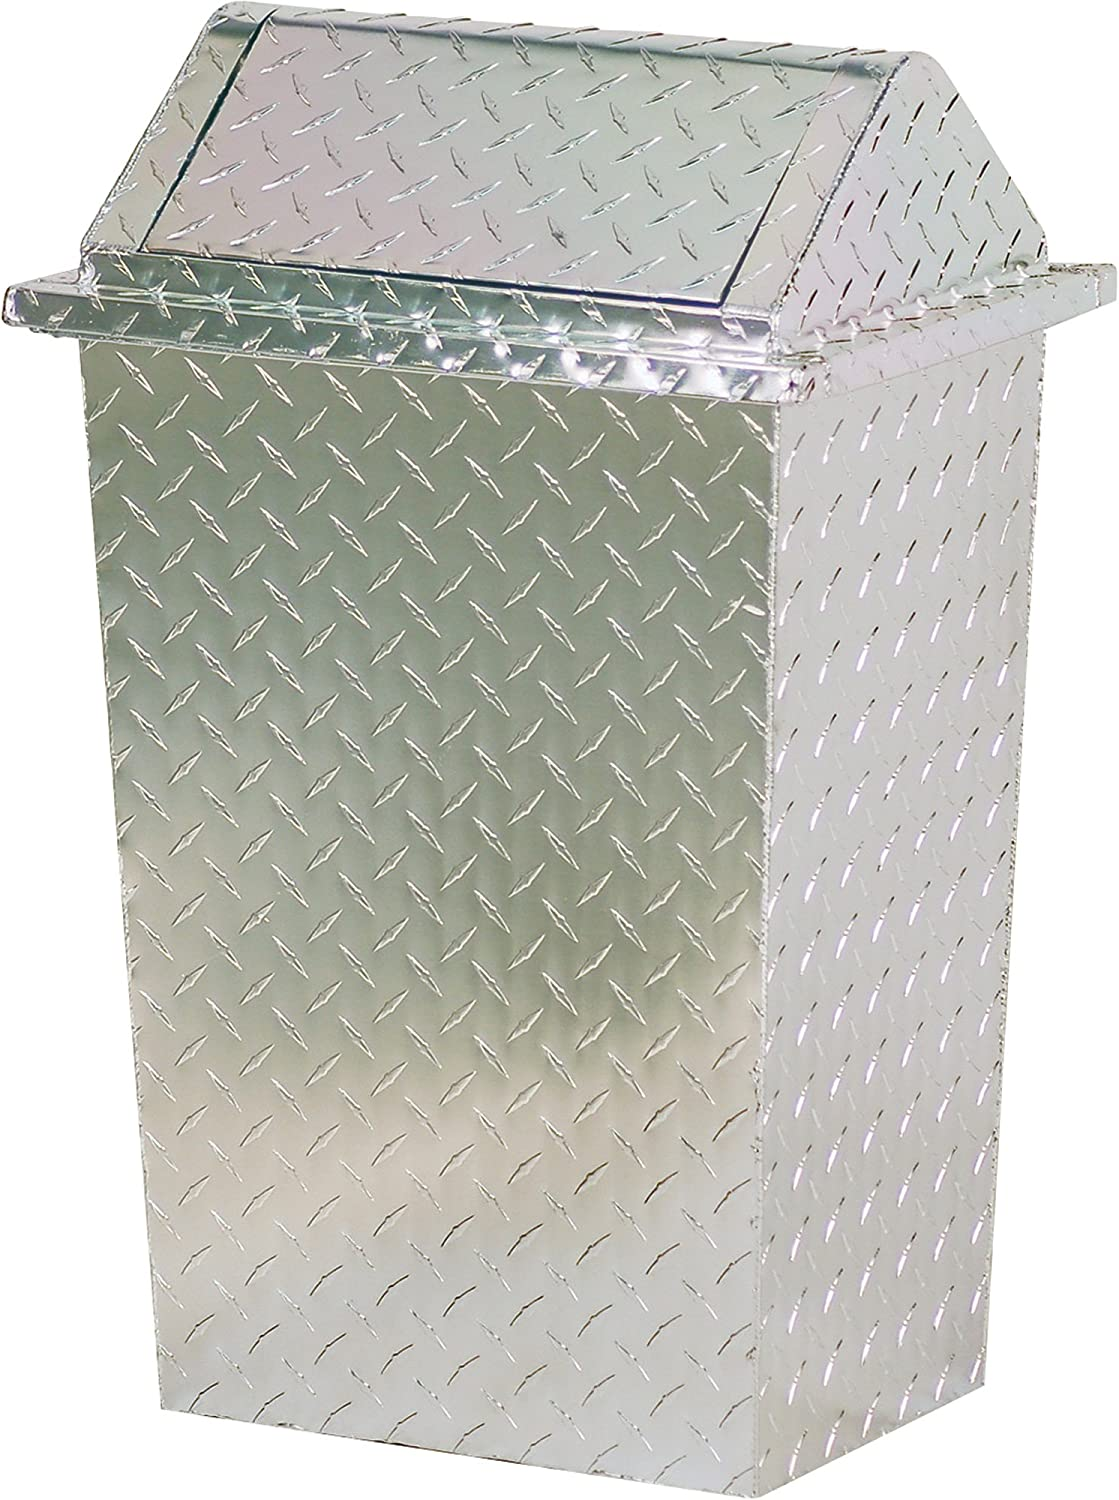 NEW Rugged Ridge 13551.40 Bin Trash Removable FREE SHIPPING